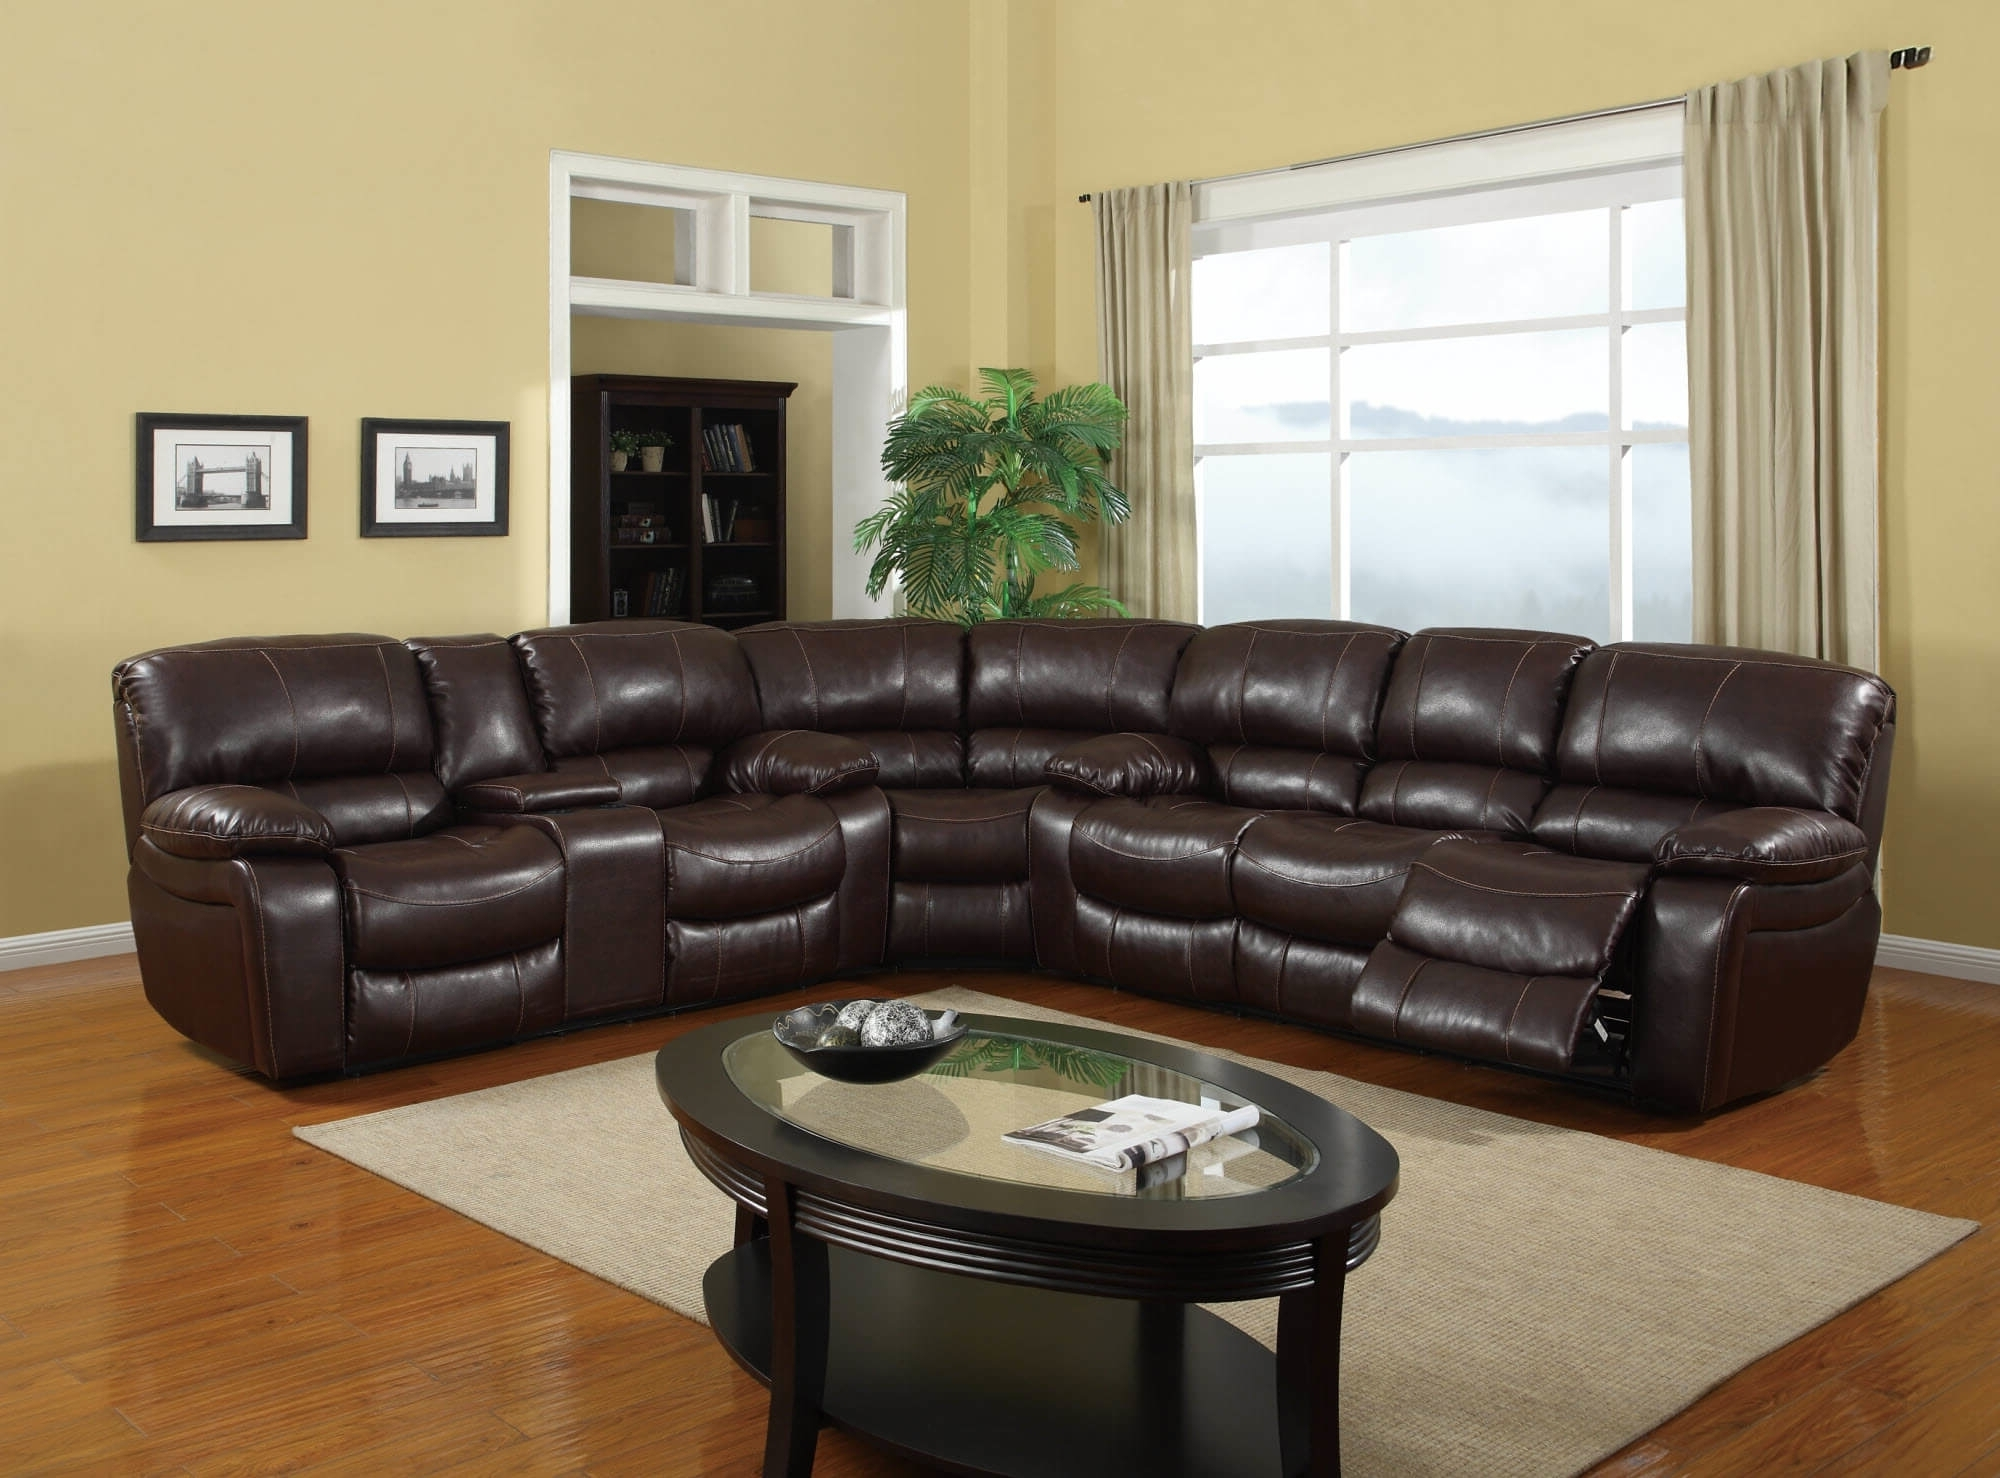 Lovely High Quality Sectional Sofa 30 For Sofa Room Ideas With Pertaining To Quality Sectional Sofa (#8 of 12)